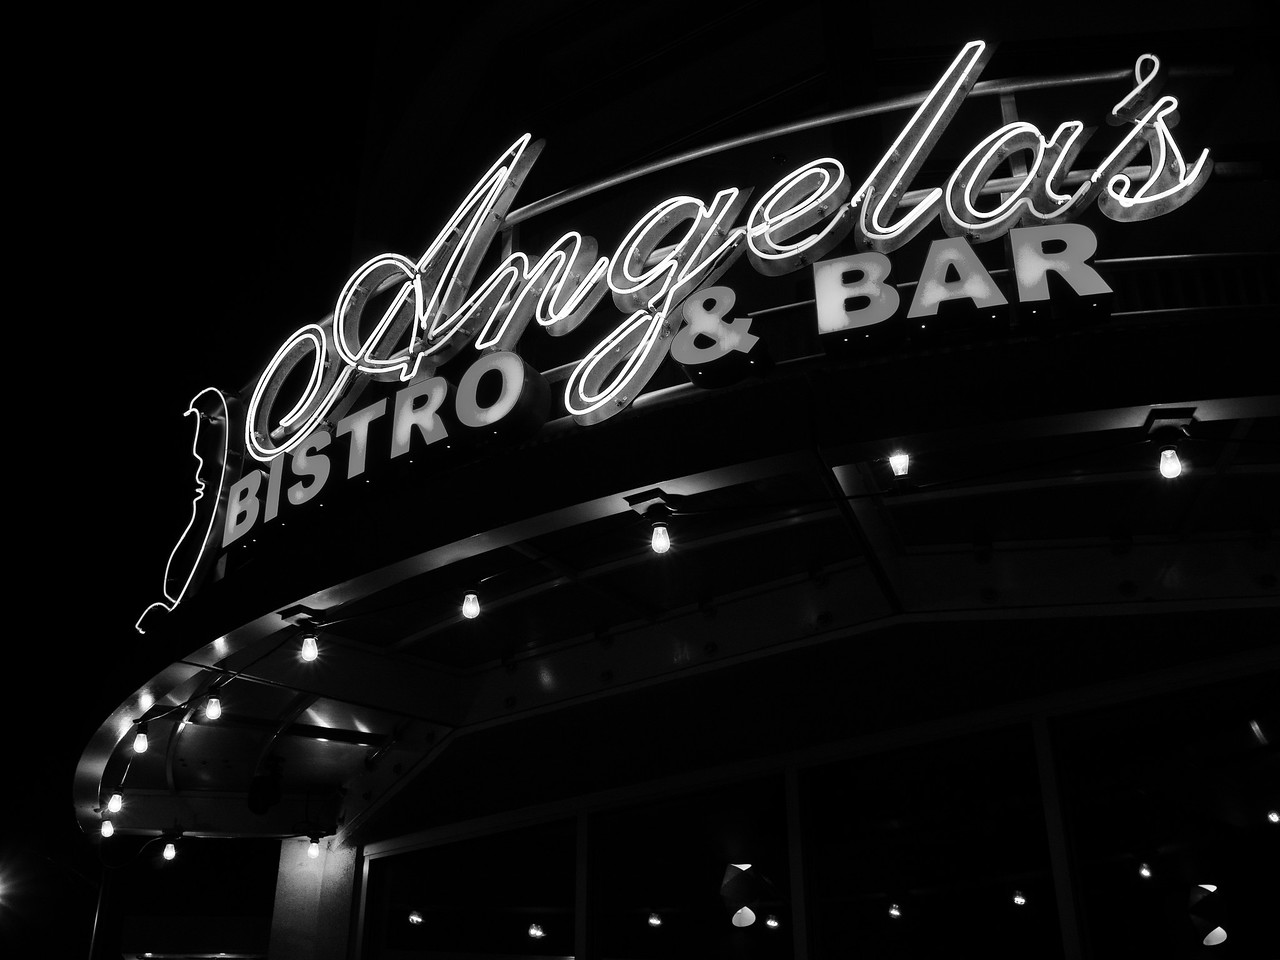 Angela's Bistro & Bar